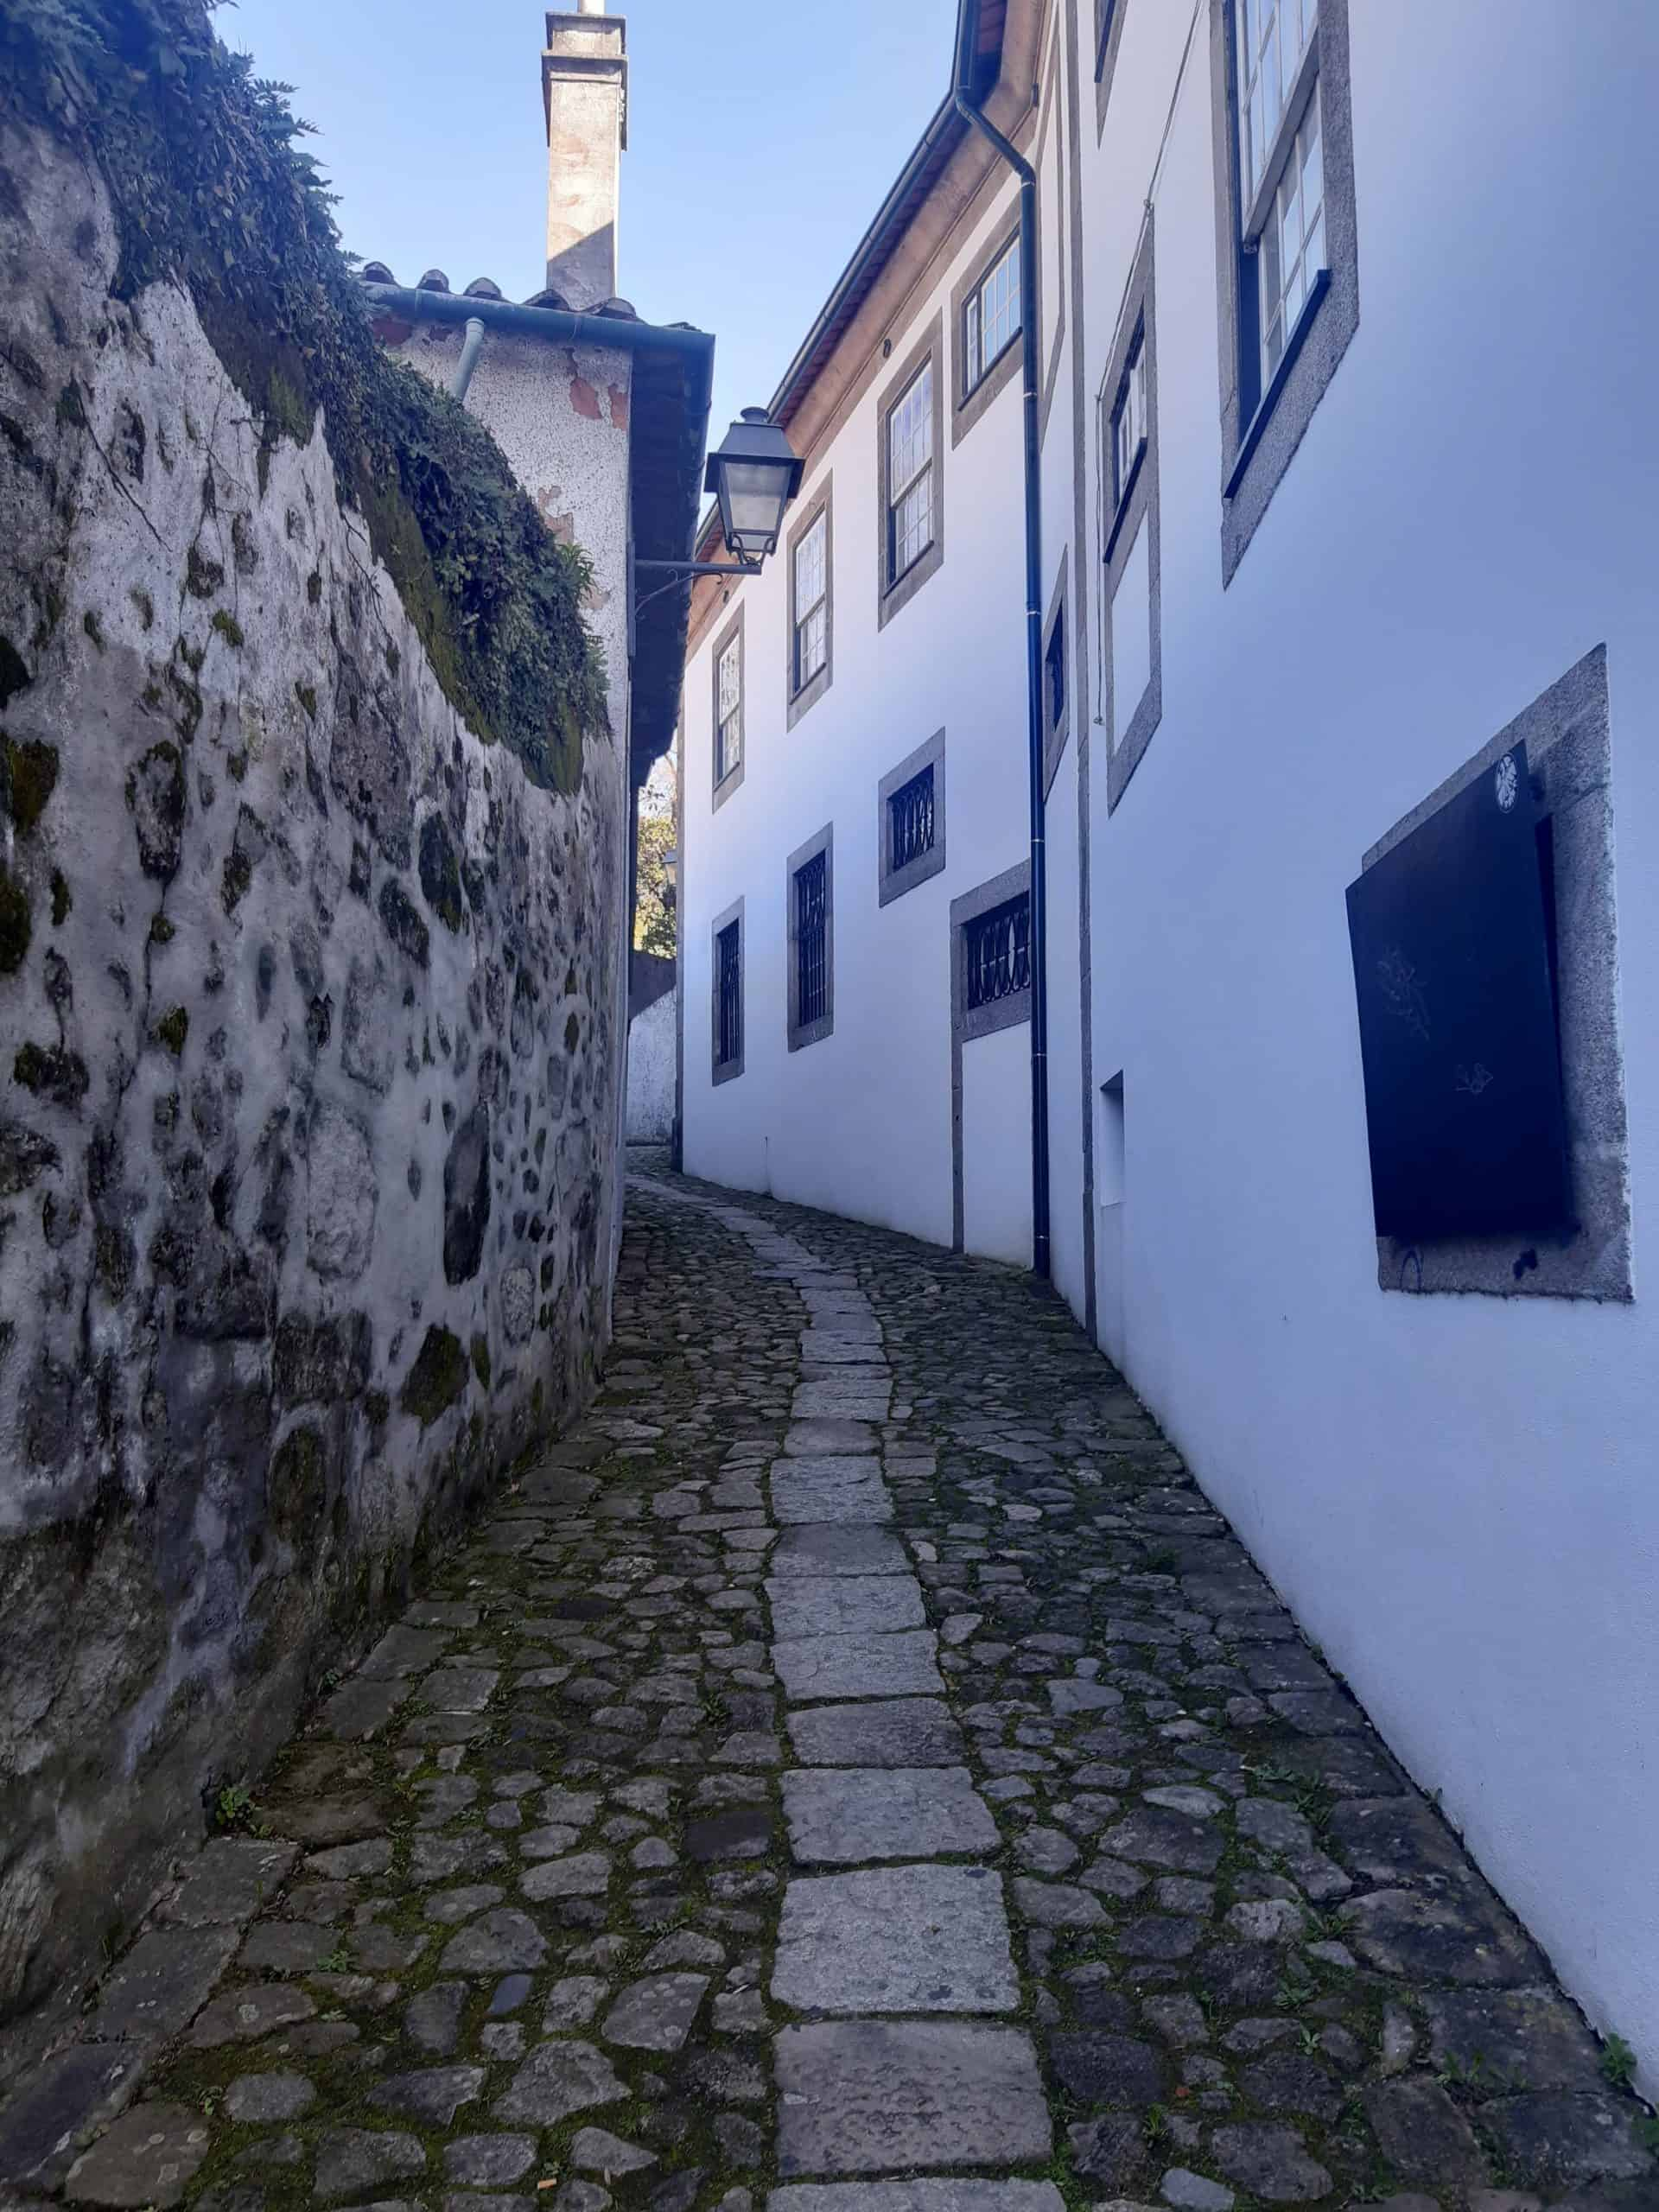 Get lost in the narrow winding streets of Porto